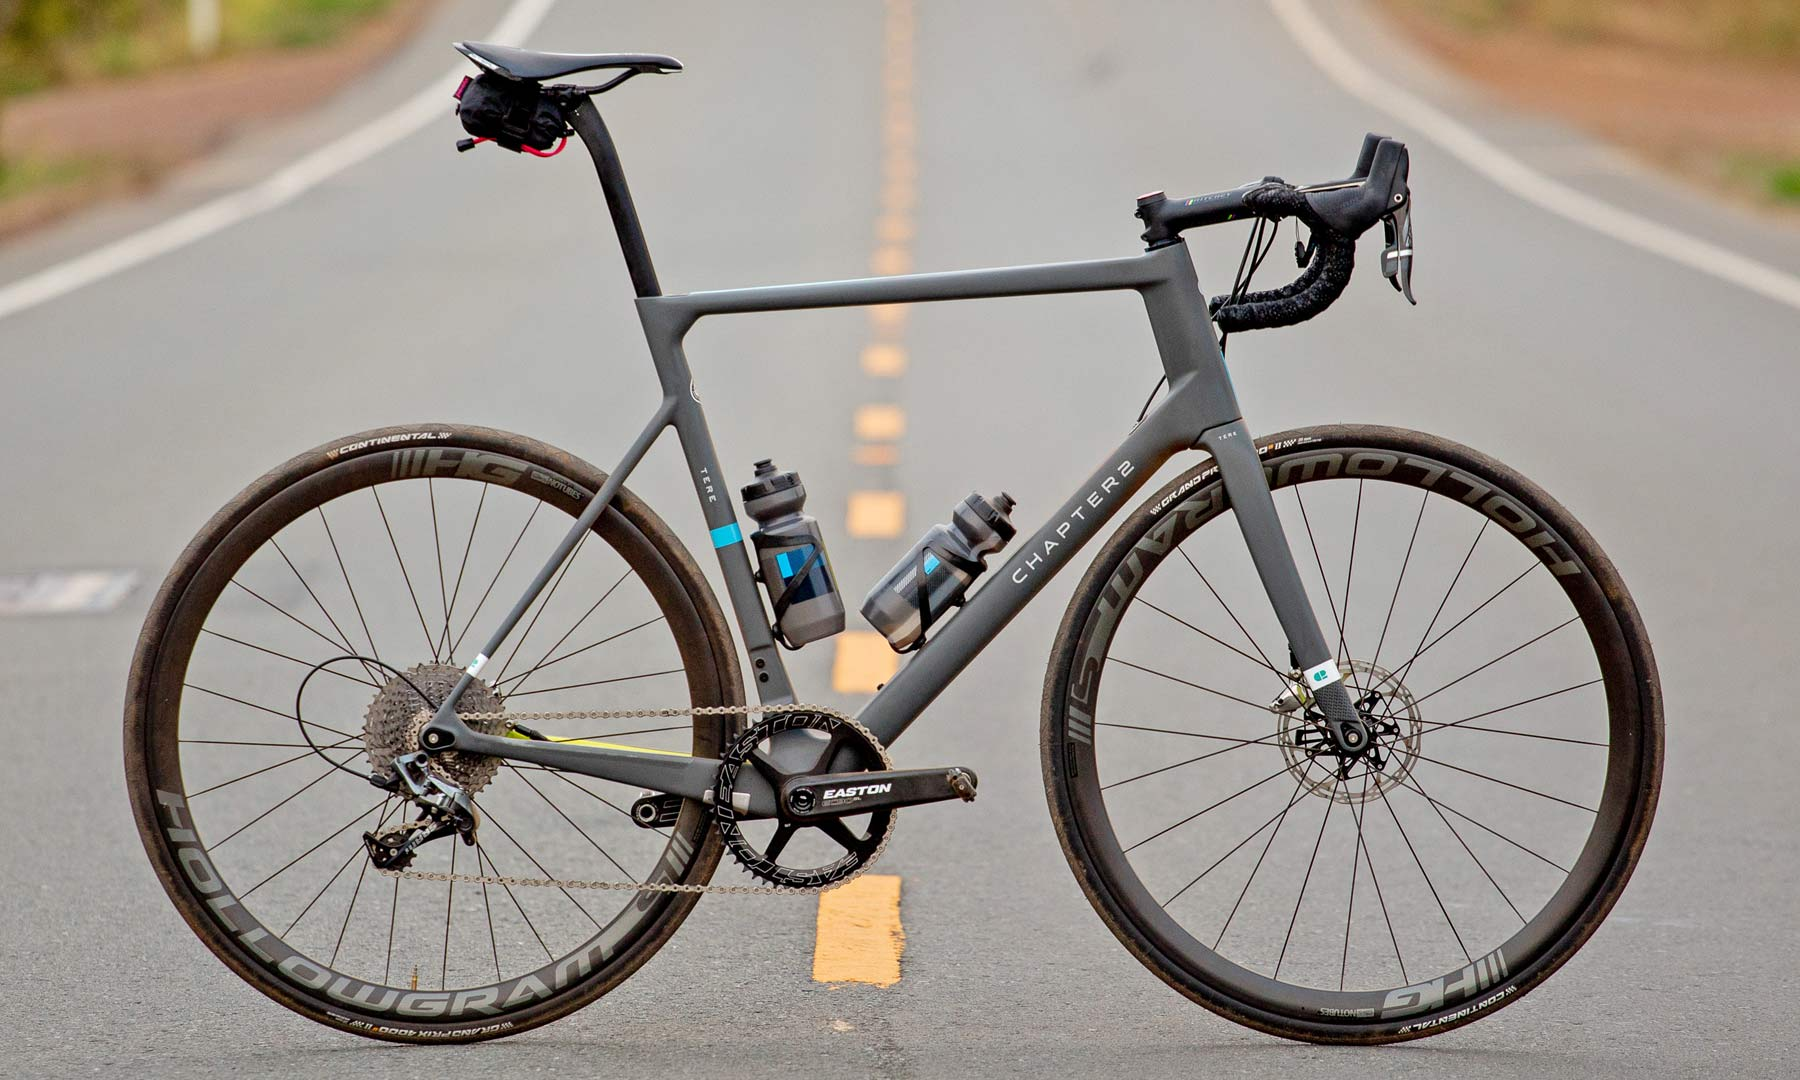 Ornot x Chapter2 Tere Disc limited edition carbon disc brake road bike driveside